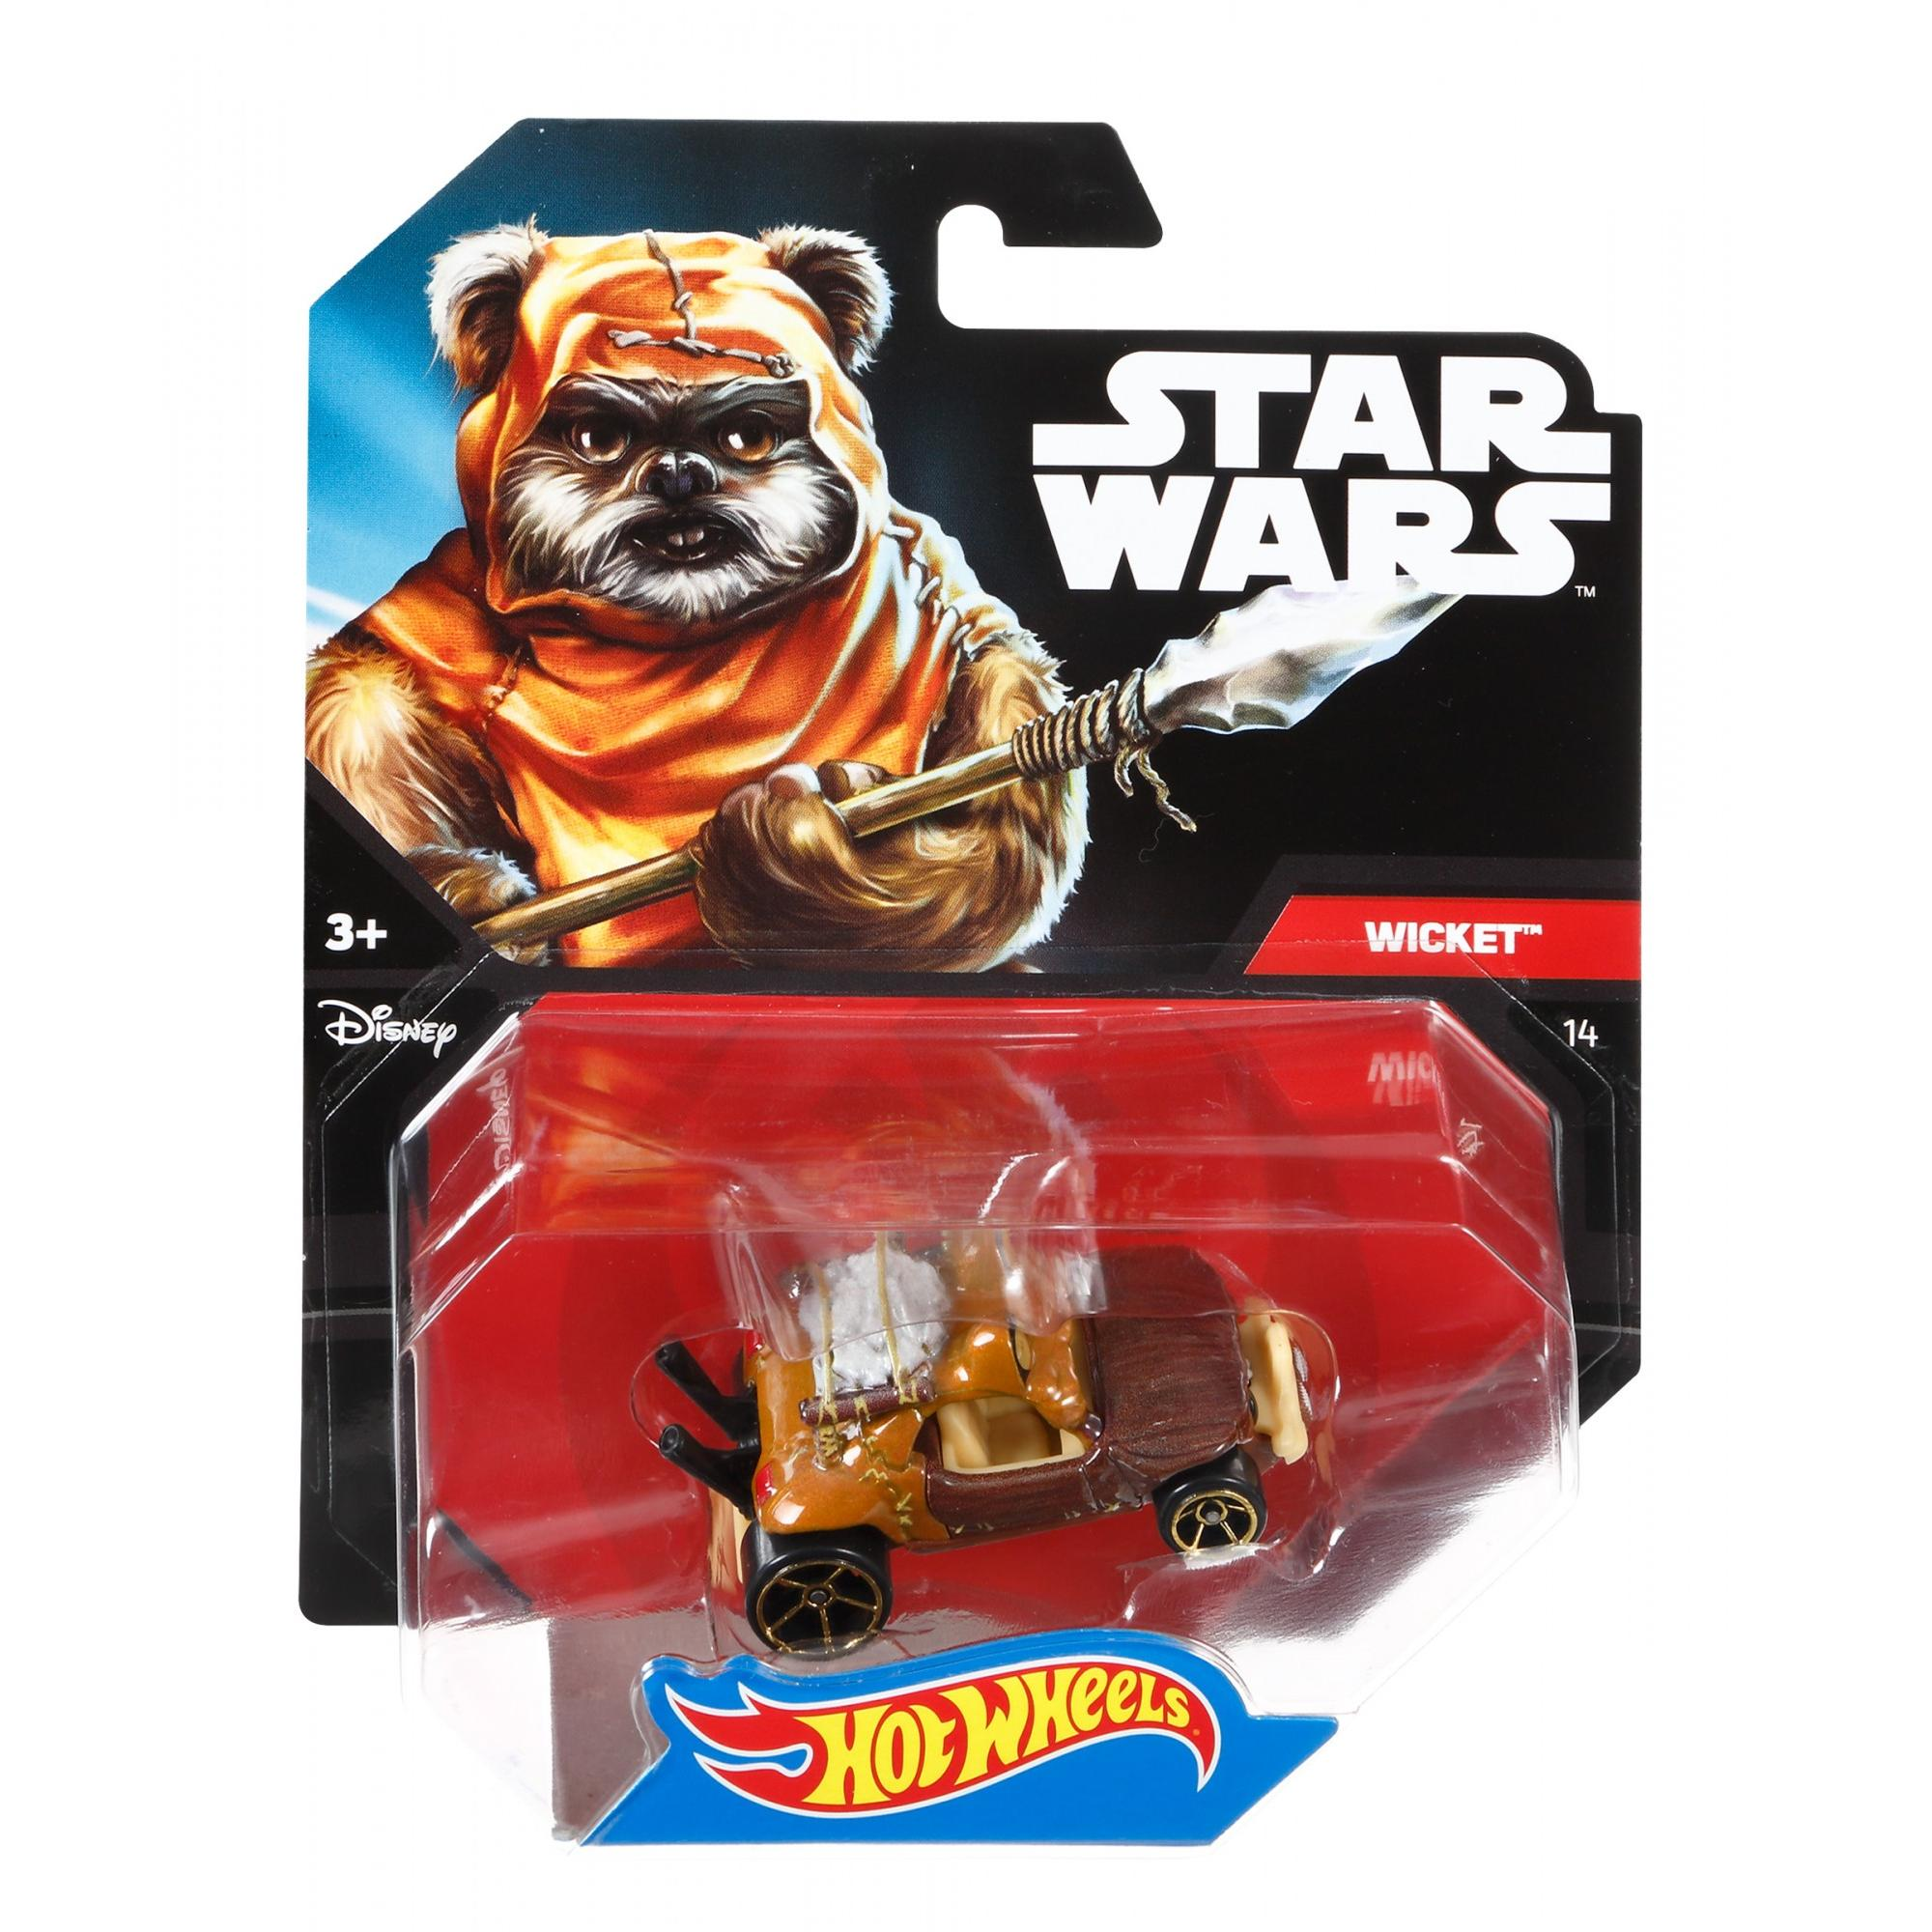 Hot Wheels Star Wars Wicket Character Car